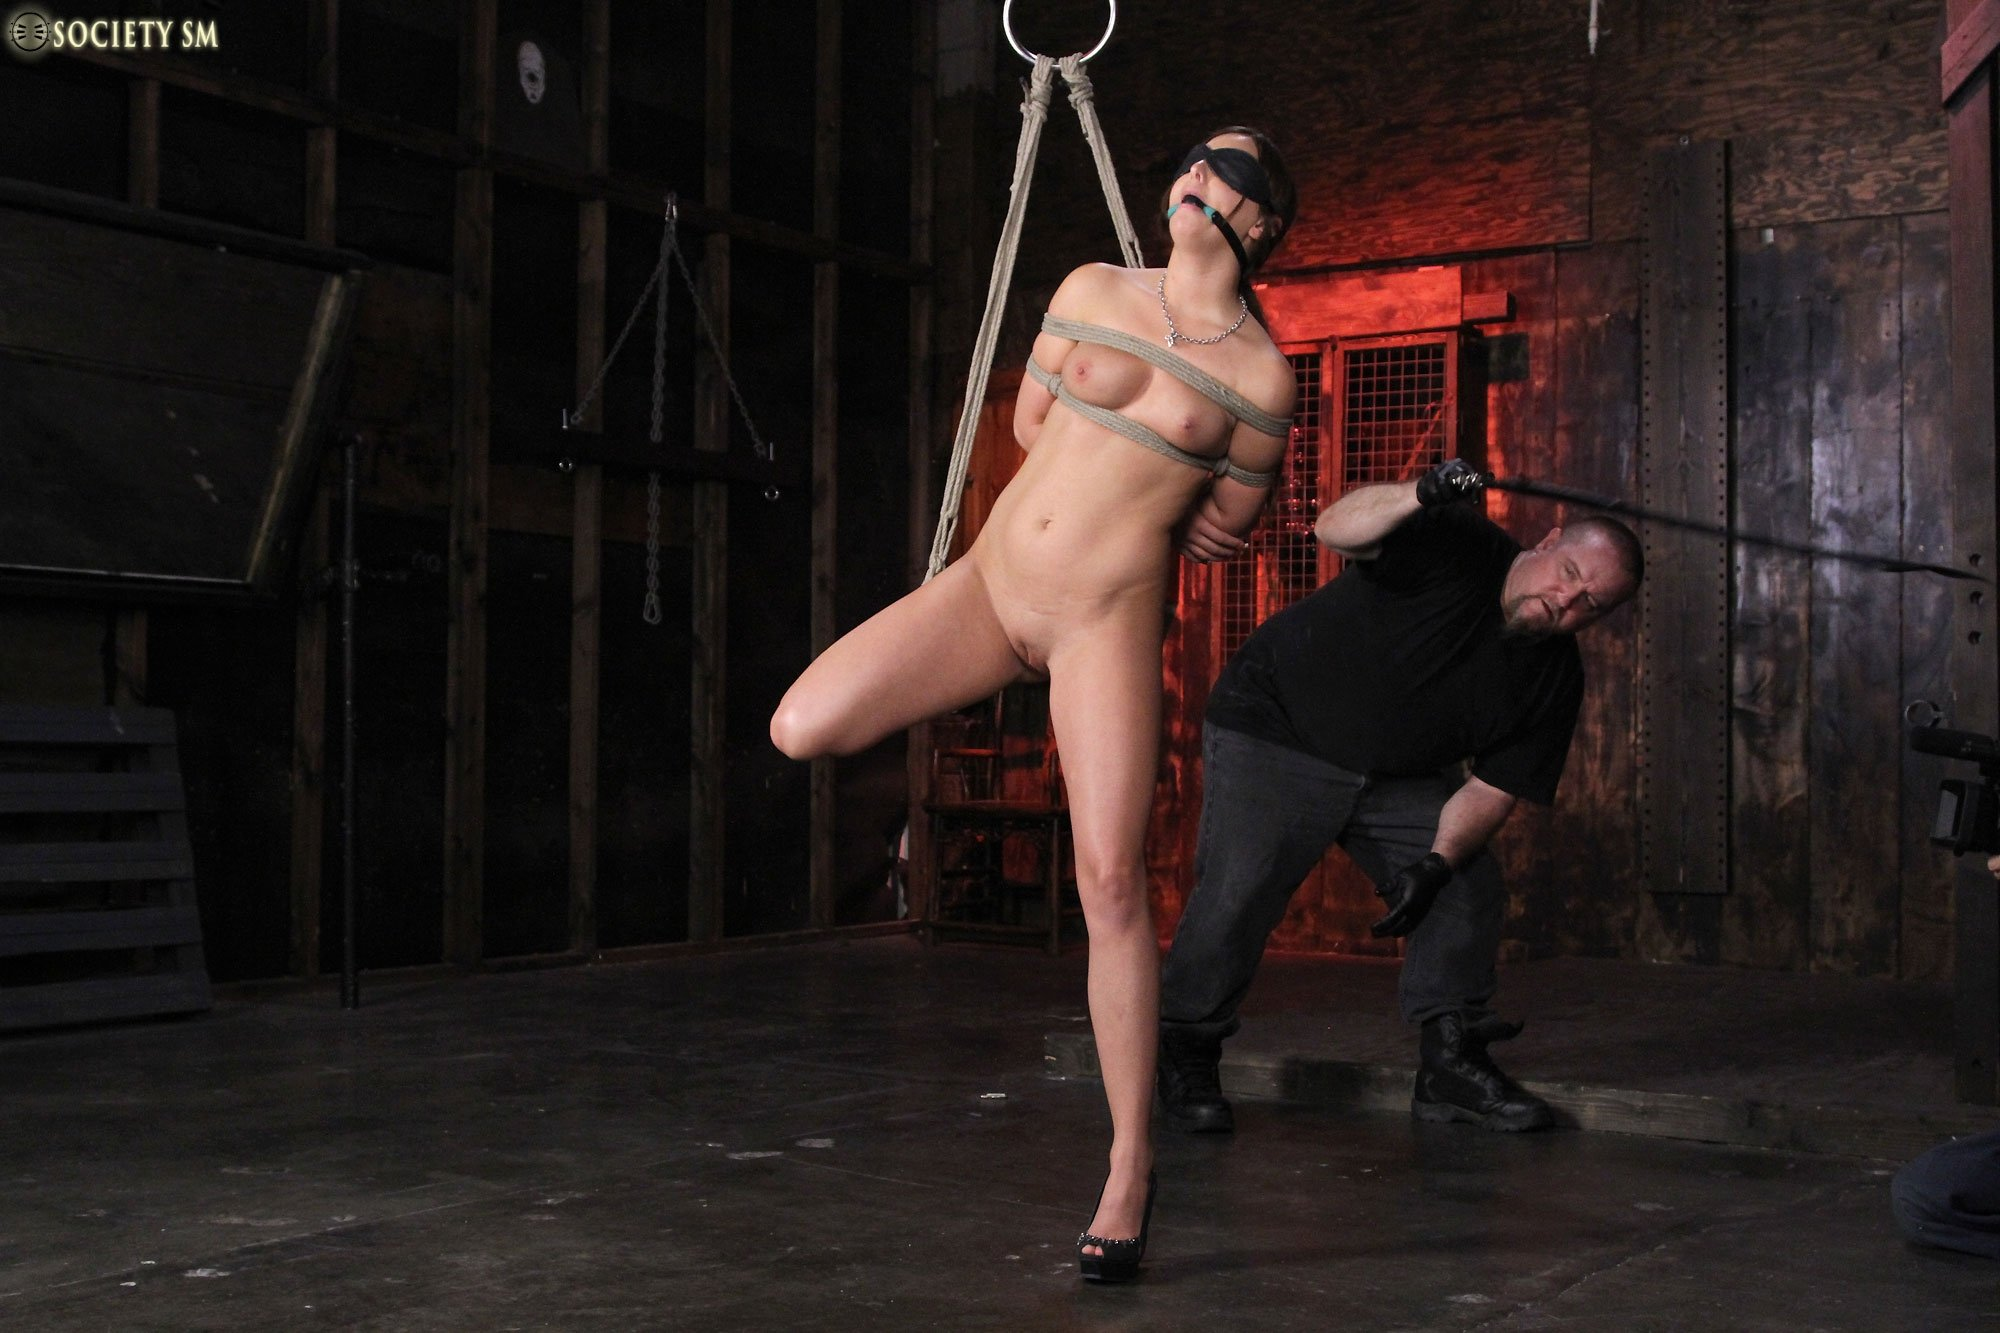 Clit submission dungeon 3